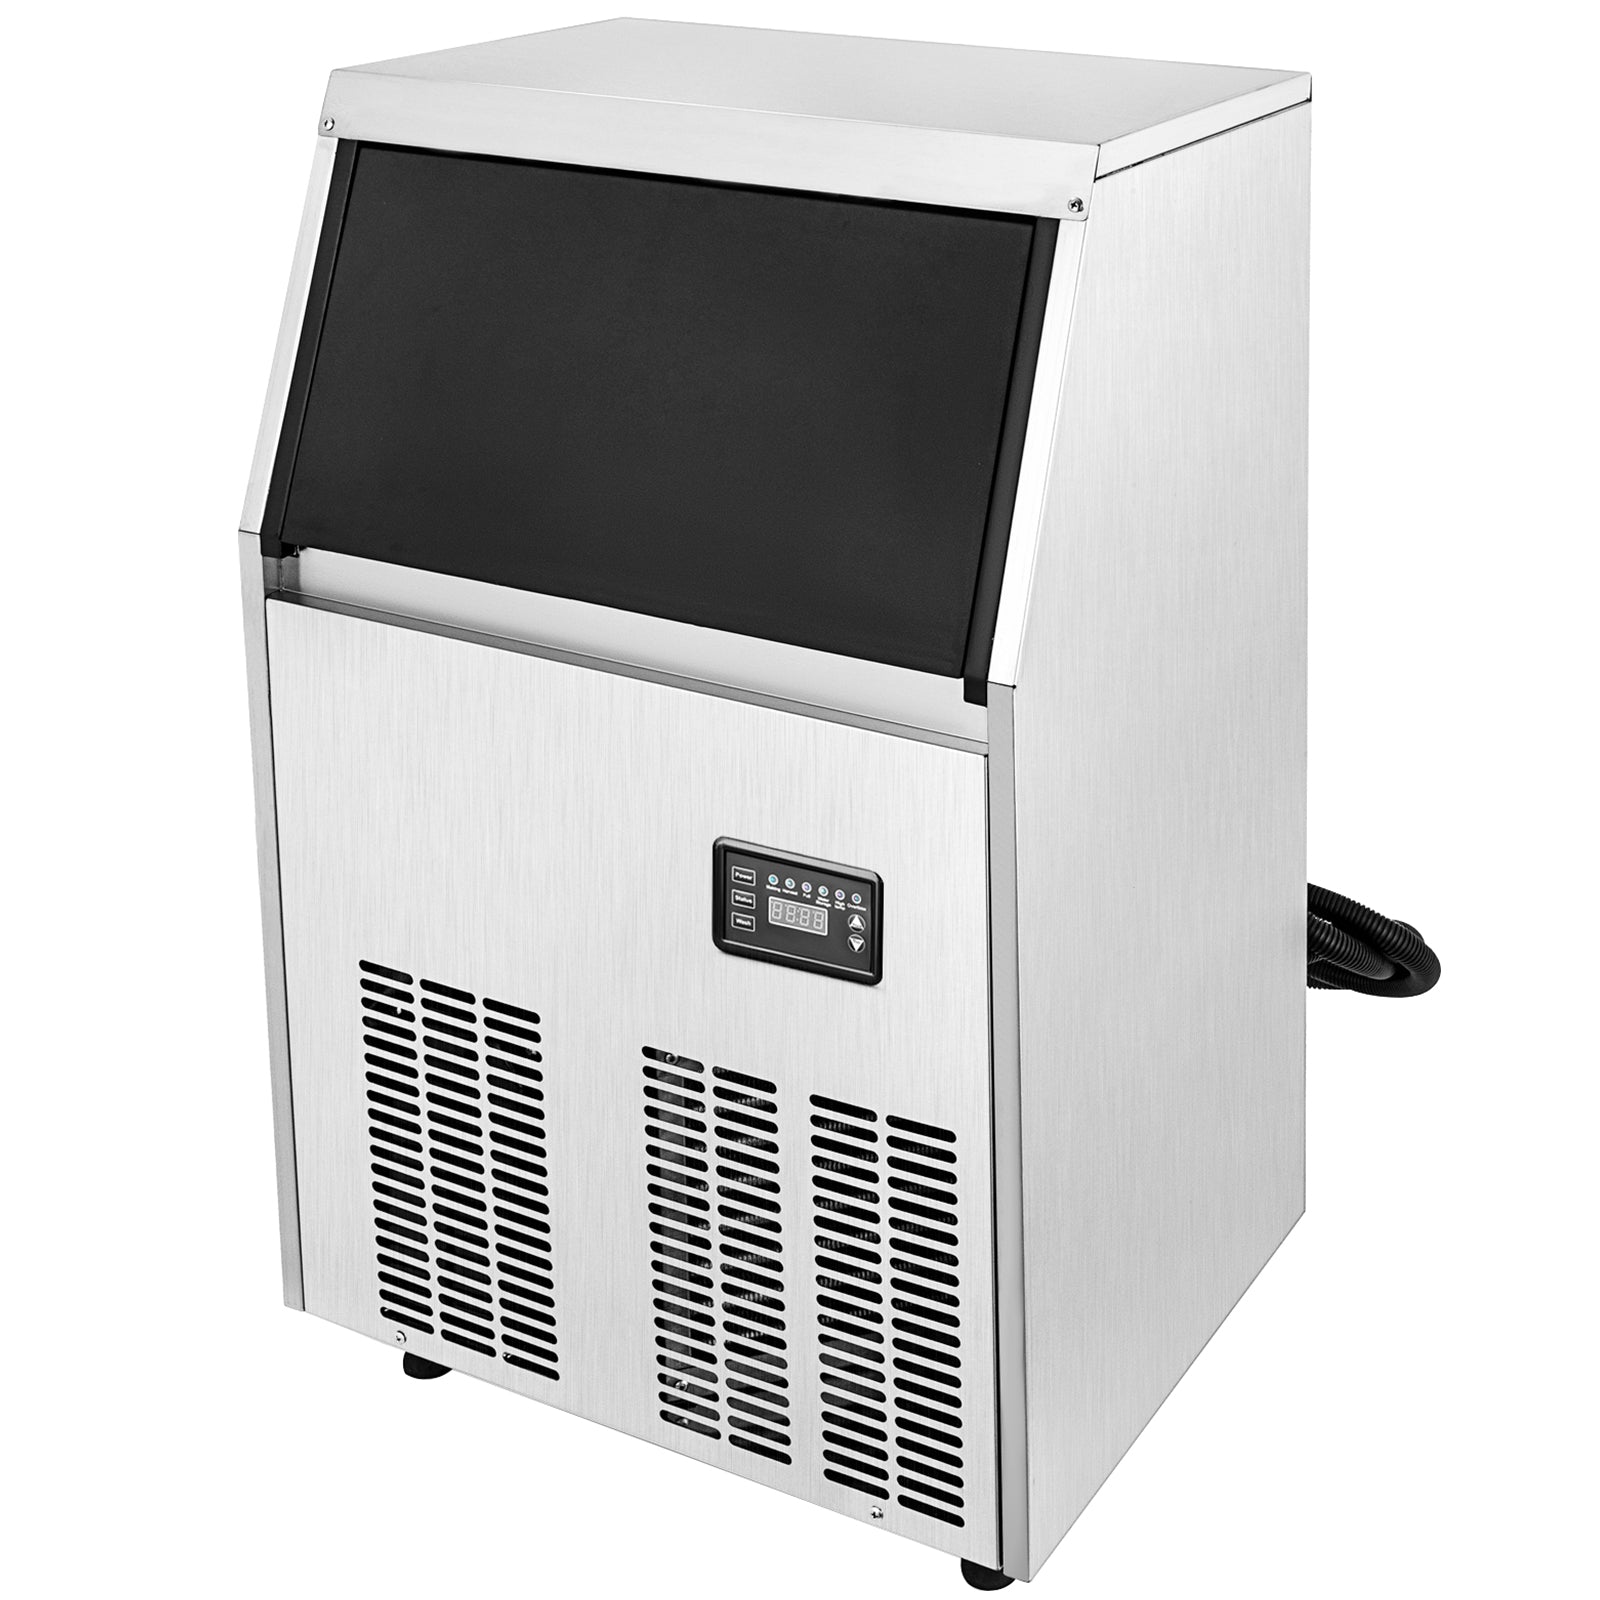 60kg Commercial Ice Maker Ice Cube Maker Ice Cream Maker 132lbs 24hrs Steel Auto